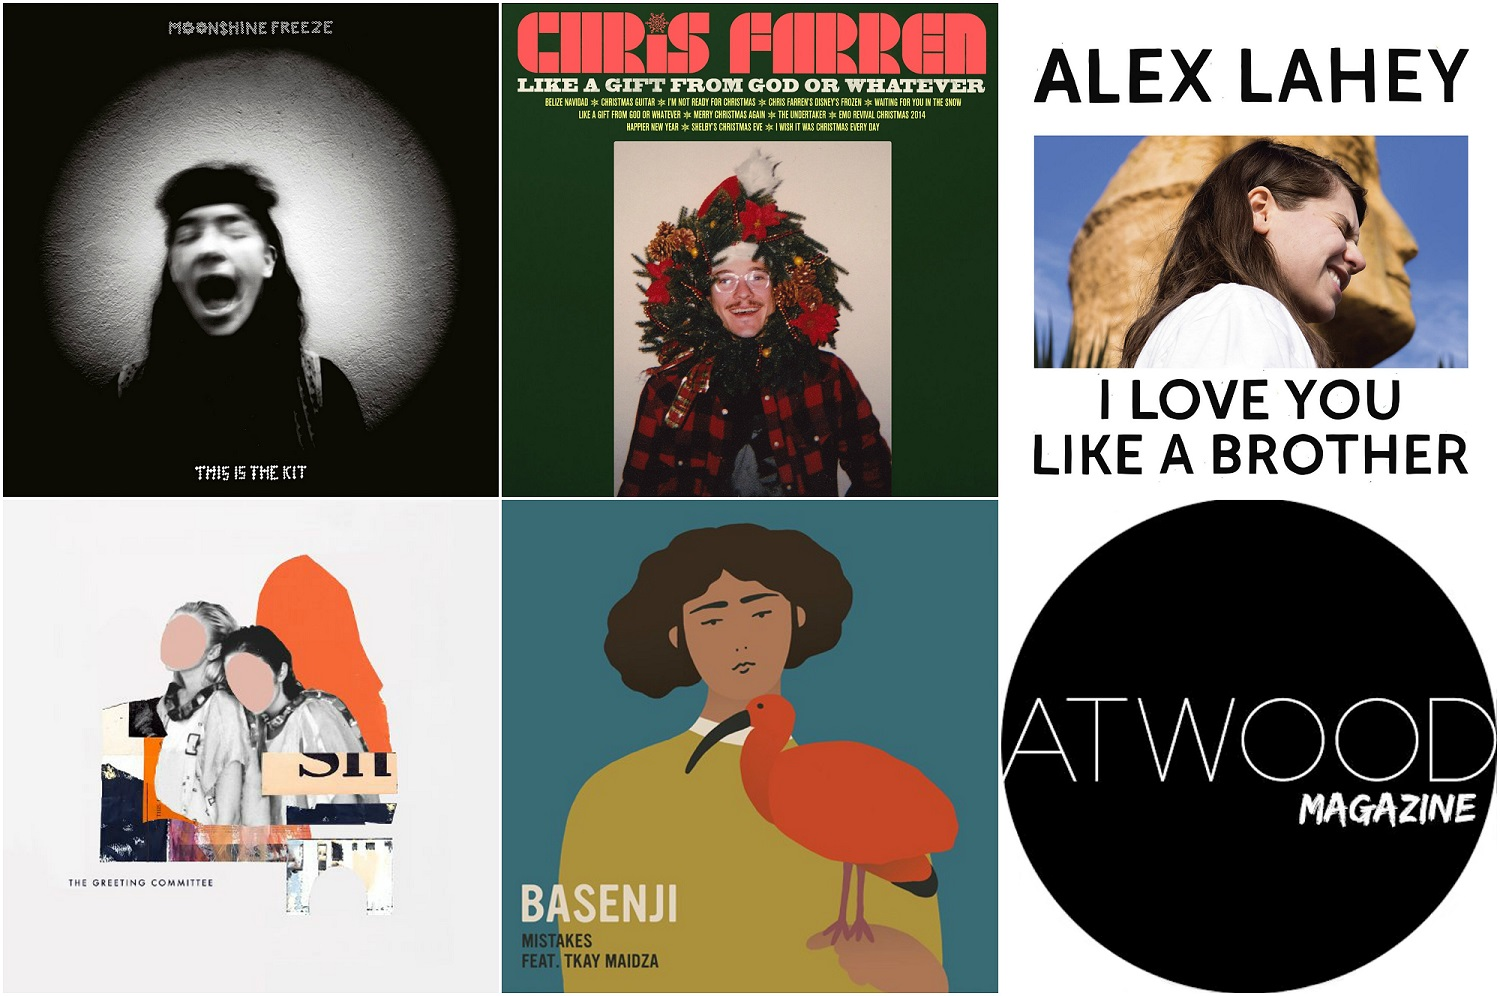 Atwood Magazine\'s Weekly Roundup: December 15, 2017